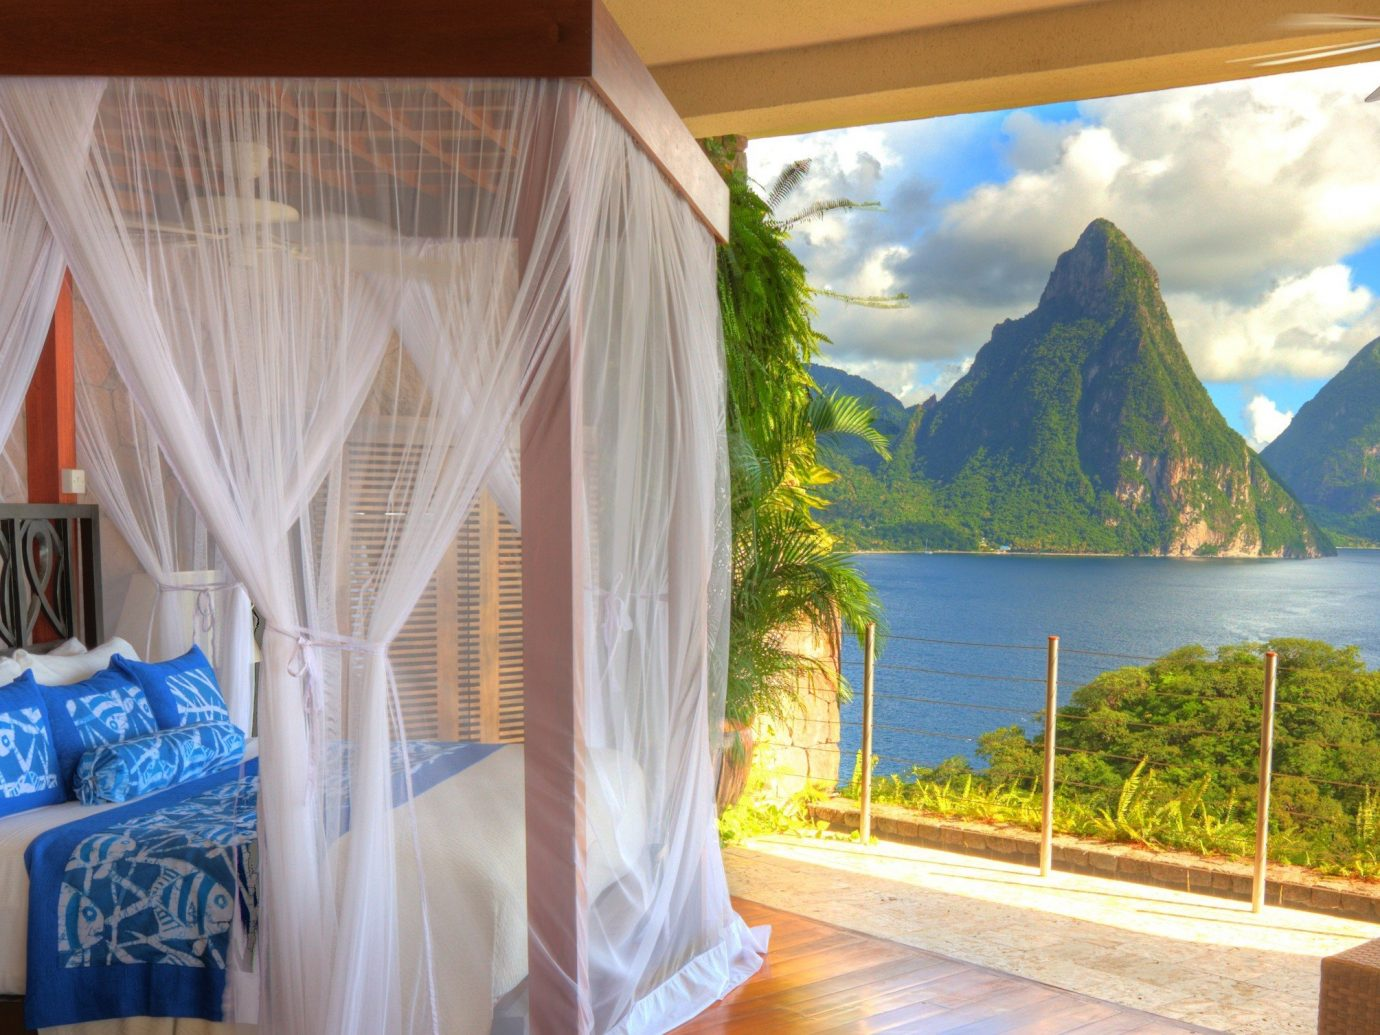 Bedroom with a view at Jade Mountain Resort, St. Lucia, Caribbean